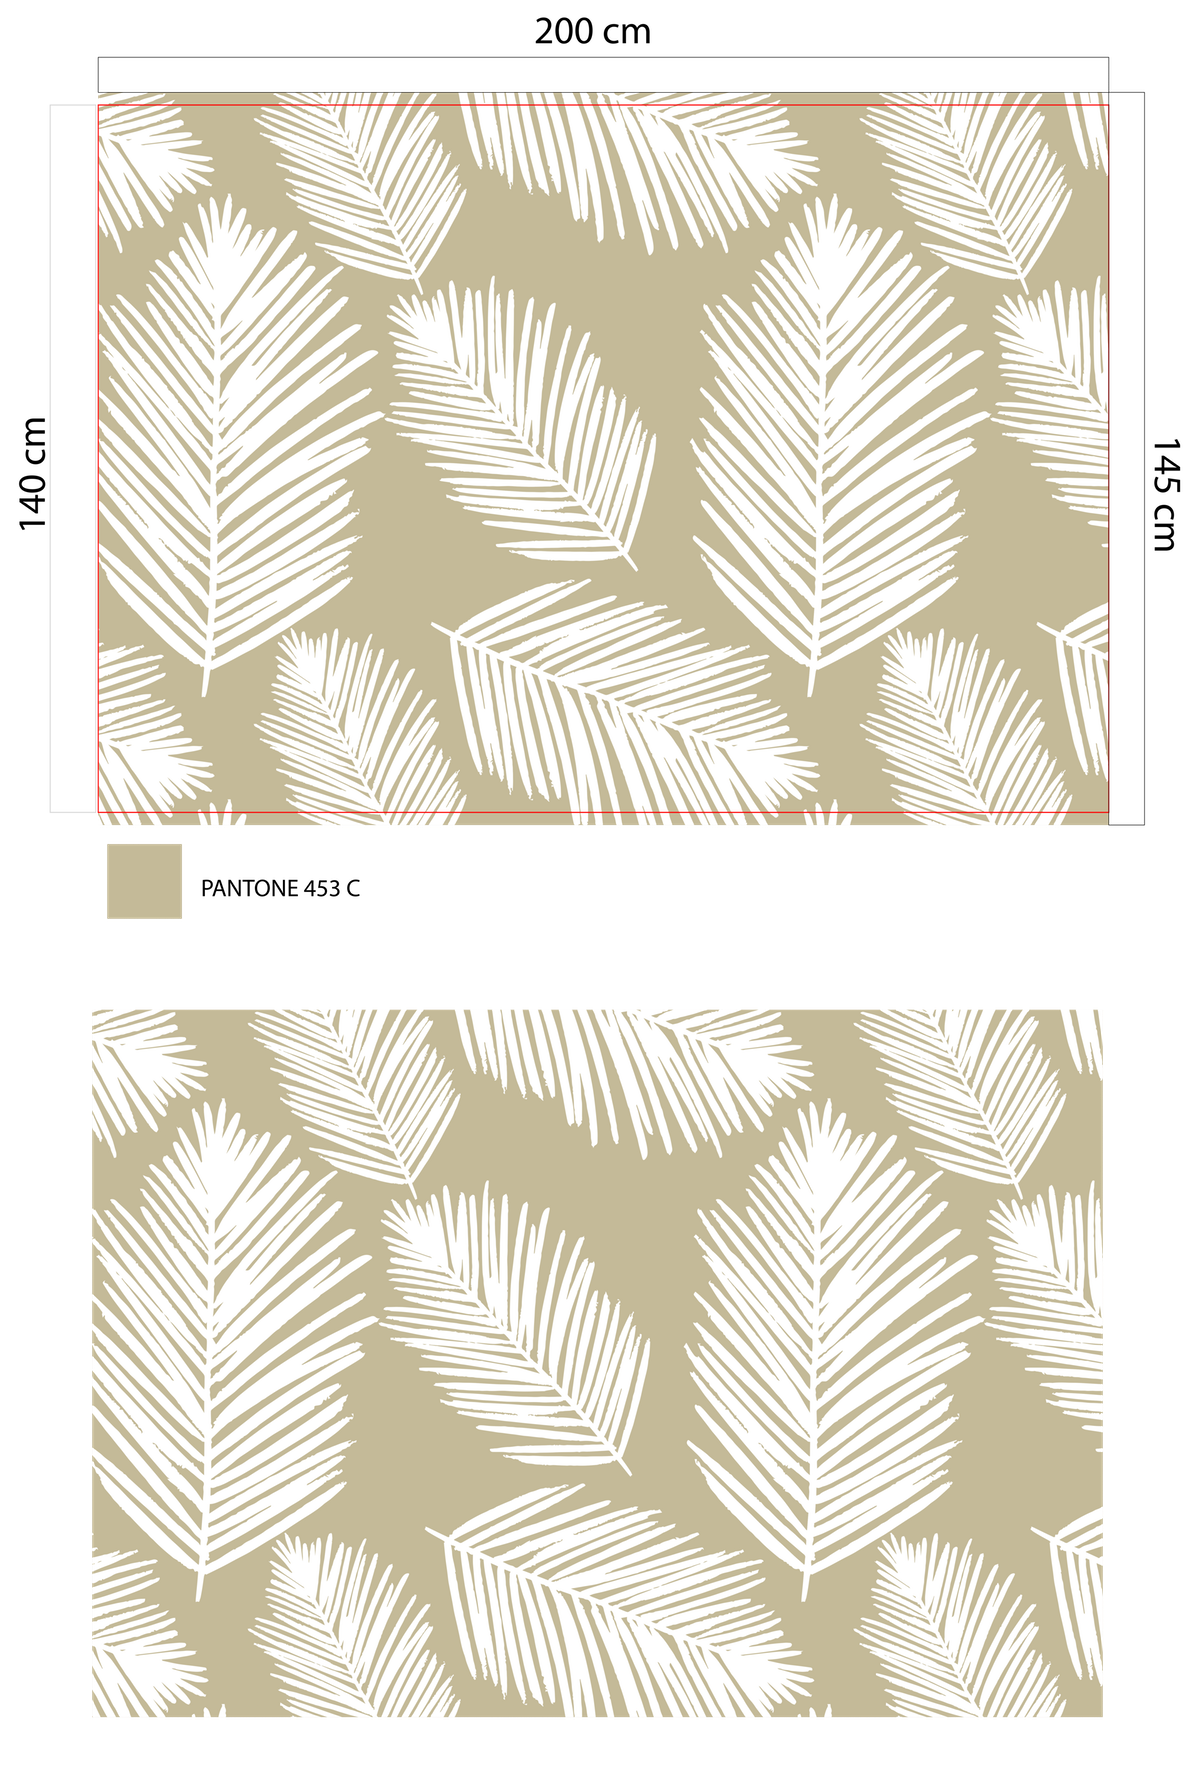 Editing Color variations for one design